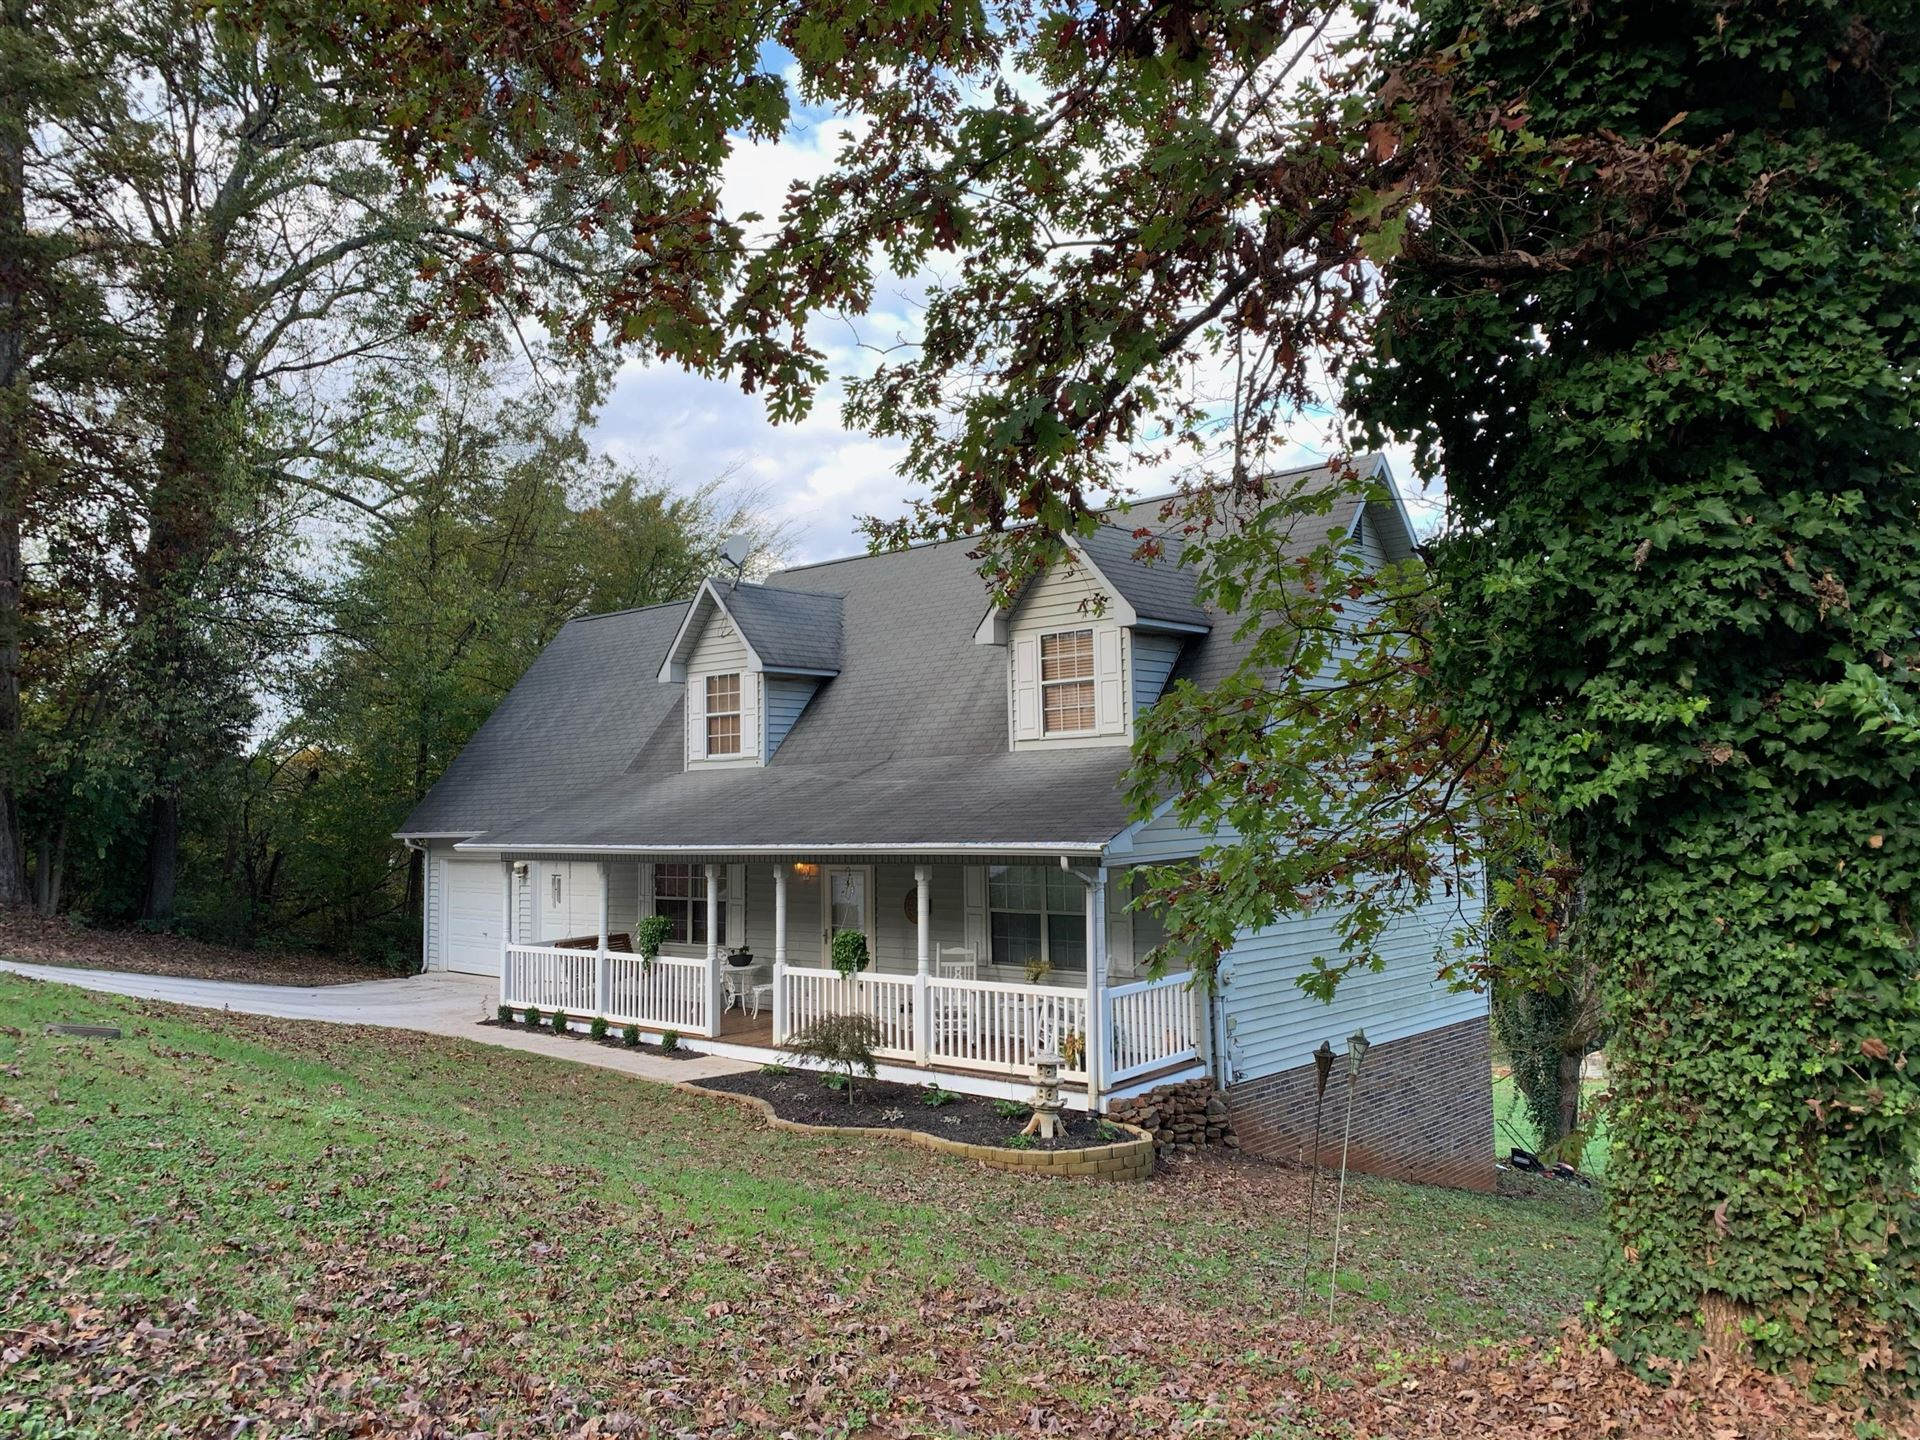 Photo of 1330 Woodside Park Drive, Maryville, TN 37801 (MLS # 1134525)